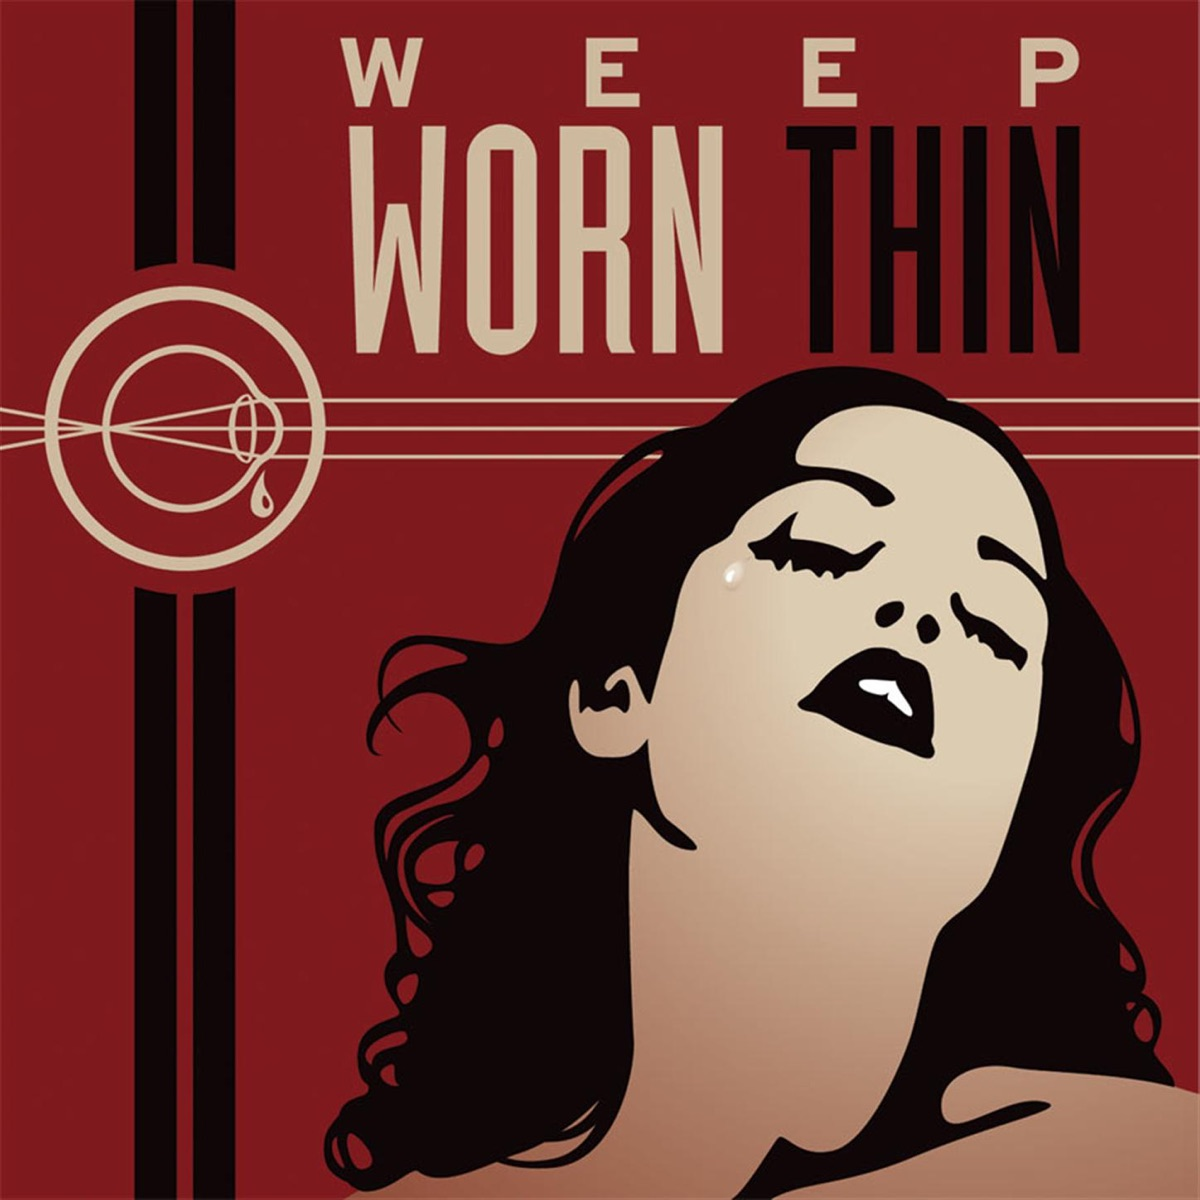 Worn Thin WEEP CD cover